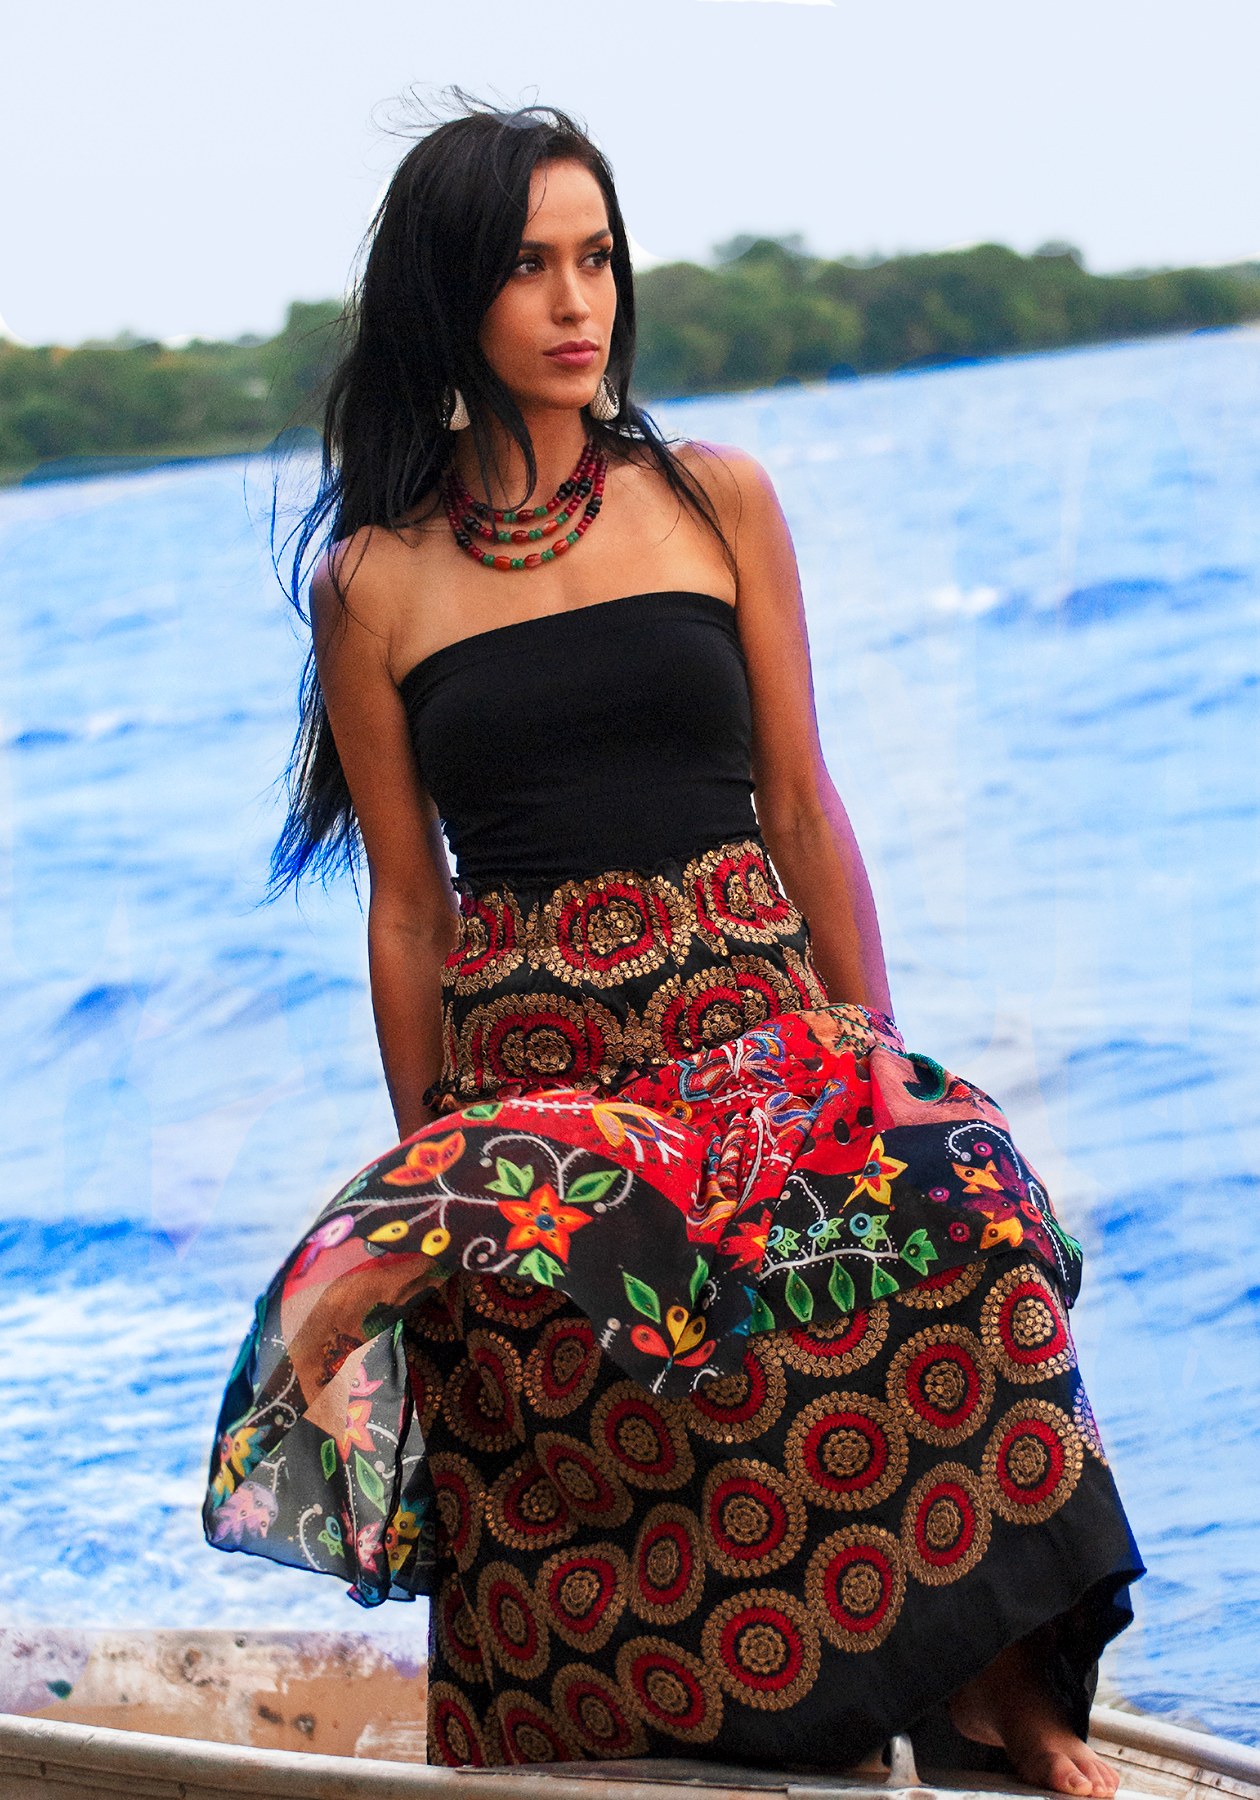 Red-Skirt-Black-near-the-boat.jpg